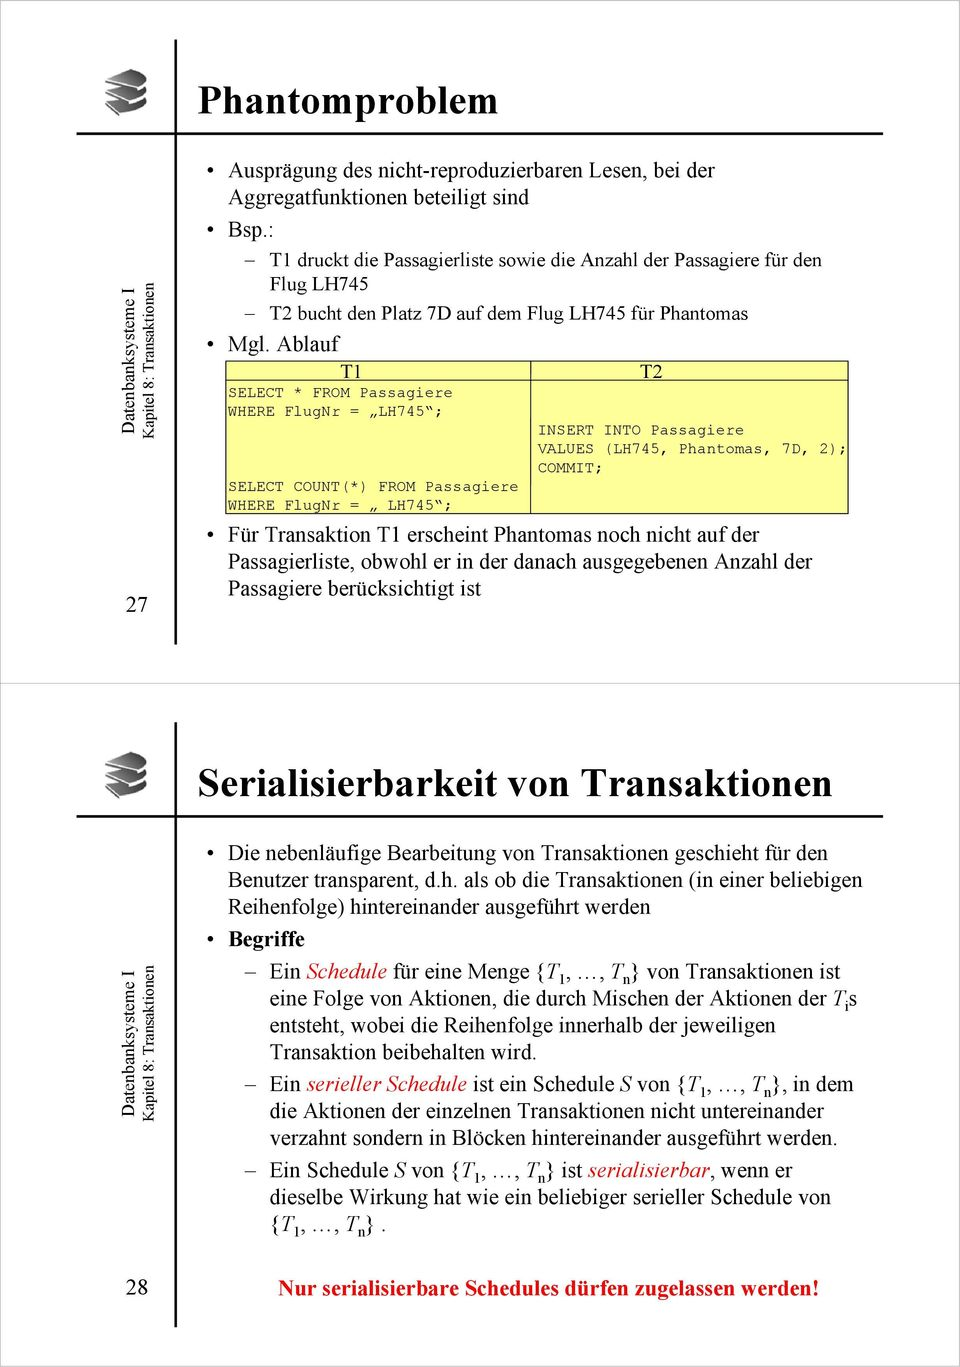 Ablauf T1 SELECT * FROM Passagiere WHERE FlugNr = LH745 ; SELECT COUNT(*) FROM Passagiere WHERE FlugNr = LH745 ; T2 INSERT INTO Passagiere VALUES (LH745, Phantomas, 7D, 2); COMMIT; Für Transaktion T1